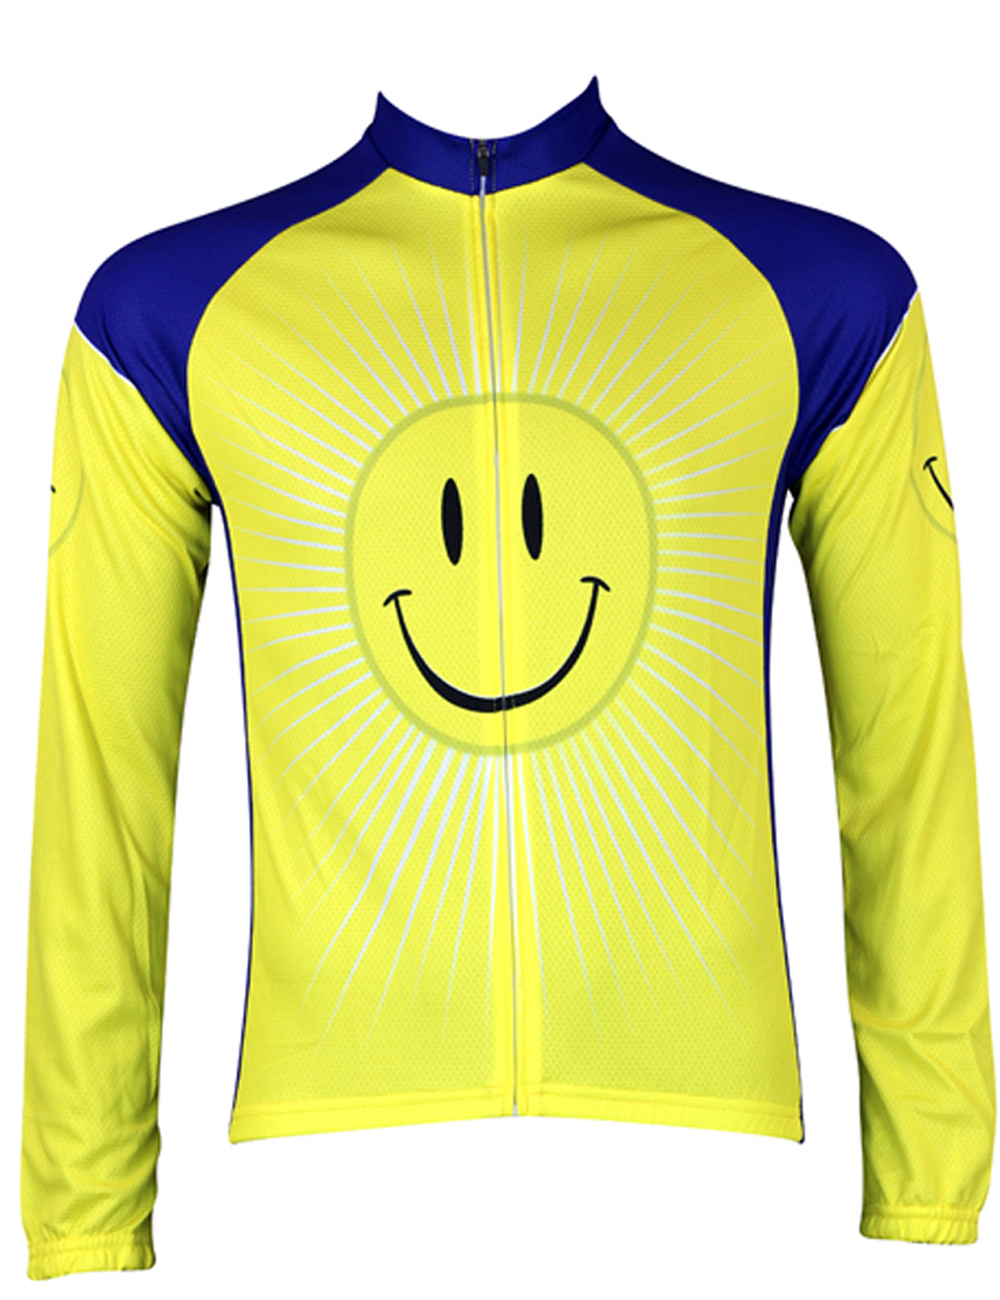 Smiley Cycling shirt bike equipment Mens Long Sleeve Cycling Jersey Cycling Clothing Bike Shirt Size 2XS To 6XL ILPALADIN new 17 black red spider mens breathable bike clothing polyester autumn long sleeve cycling jerseys size 2xs to 6xl